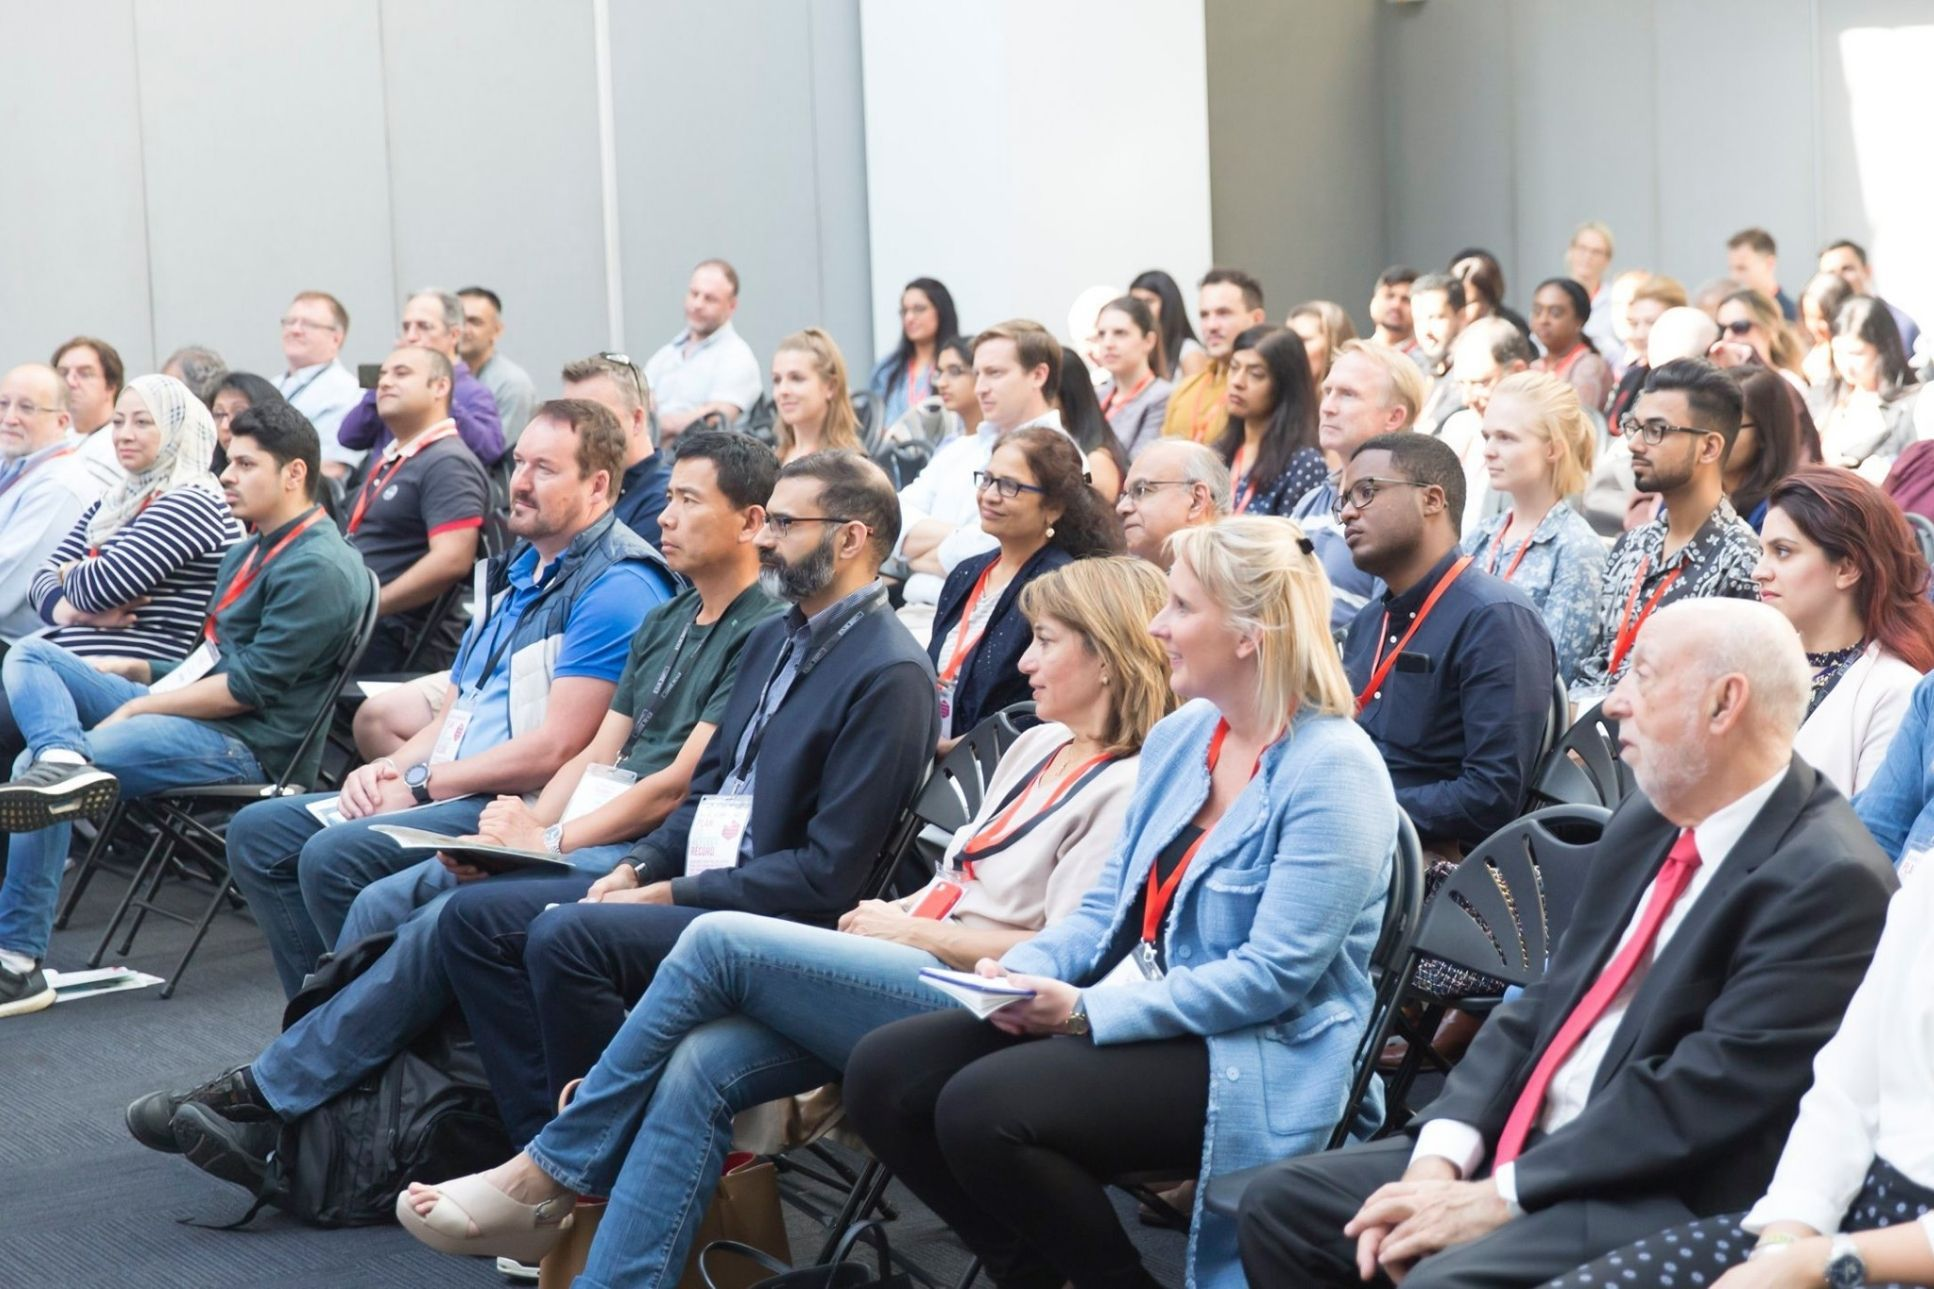 Over 150 seminars and workshop sessions